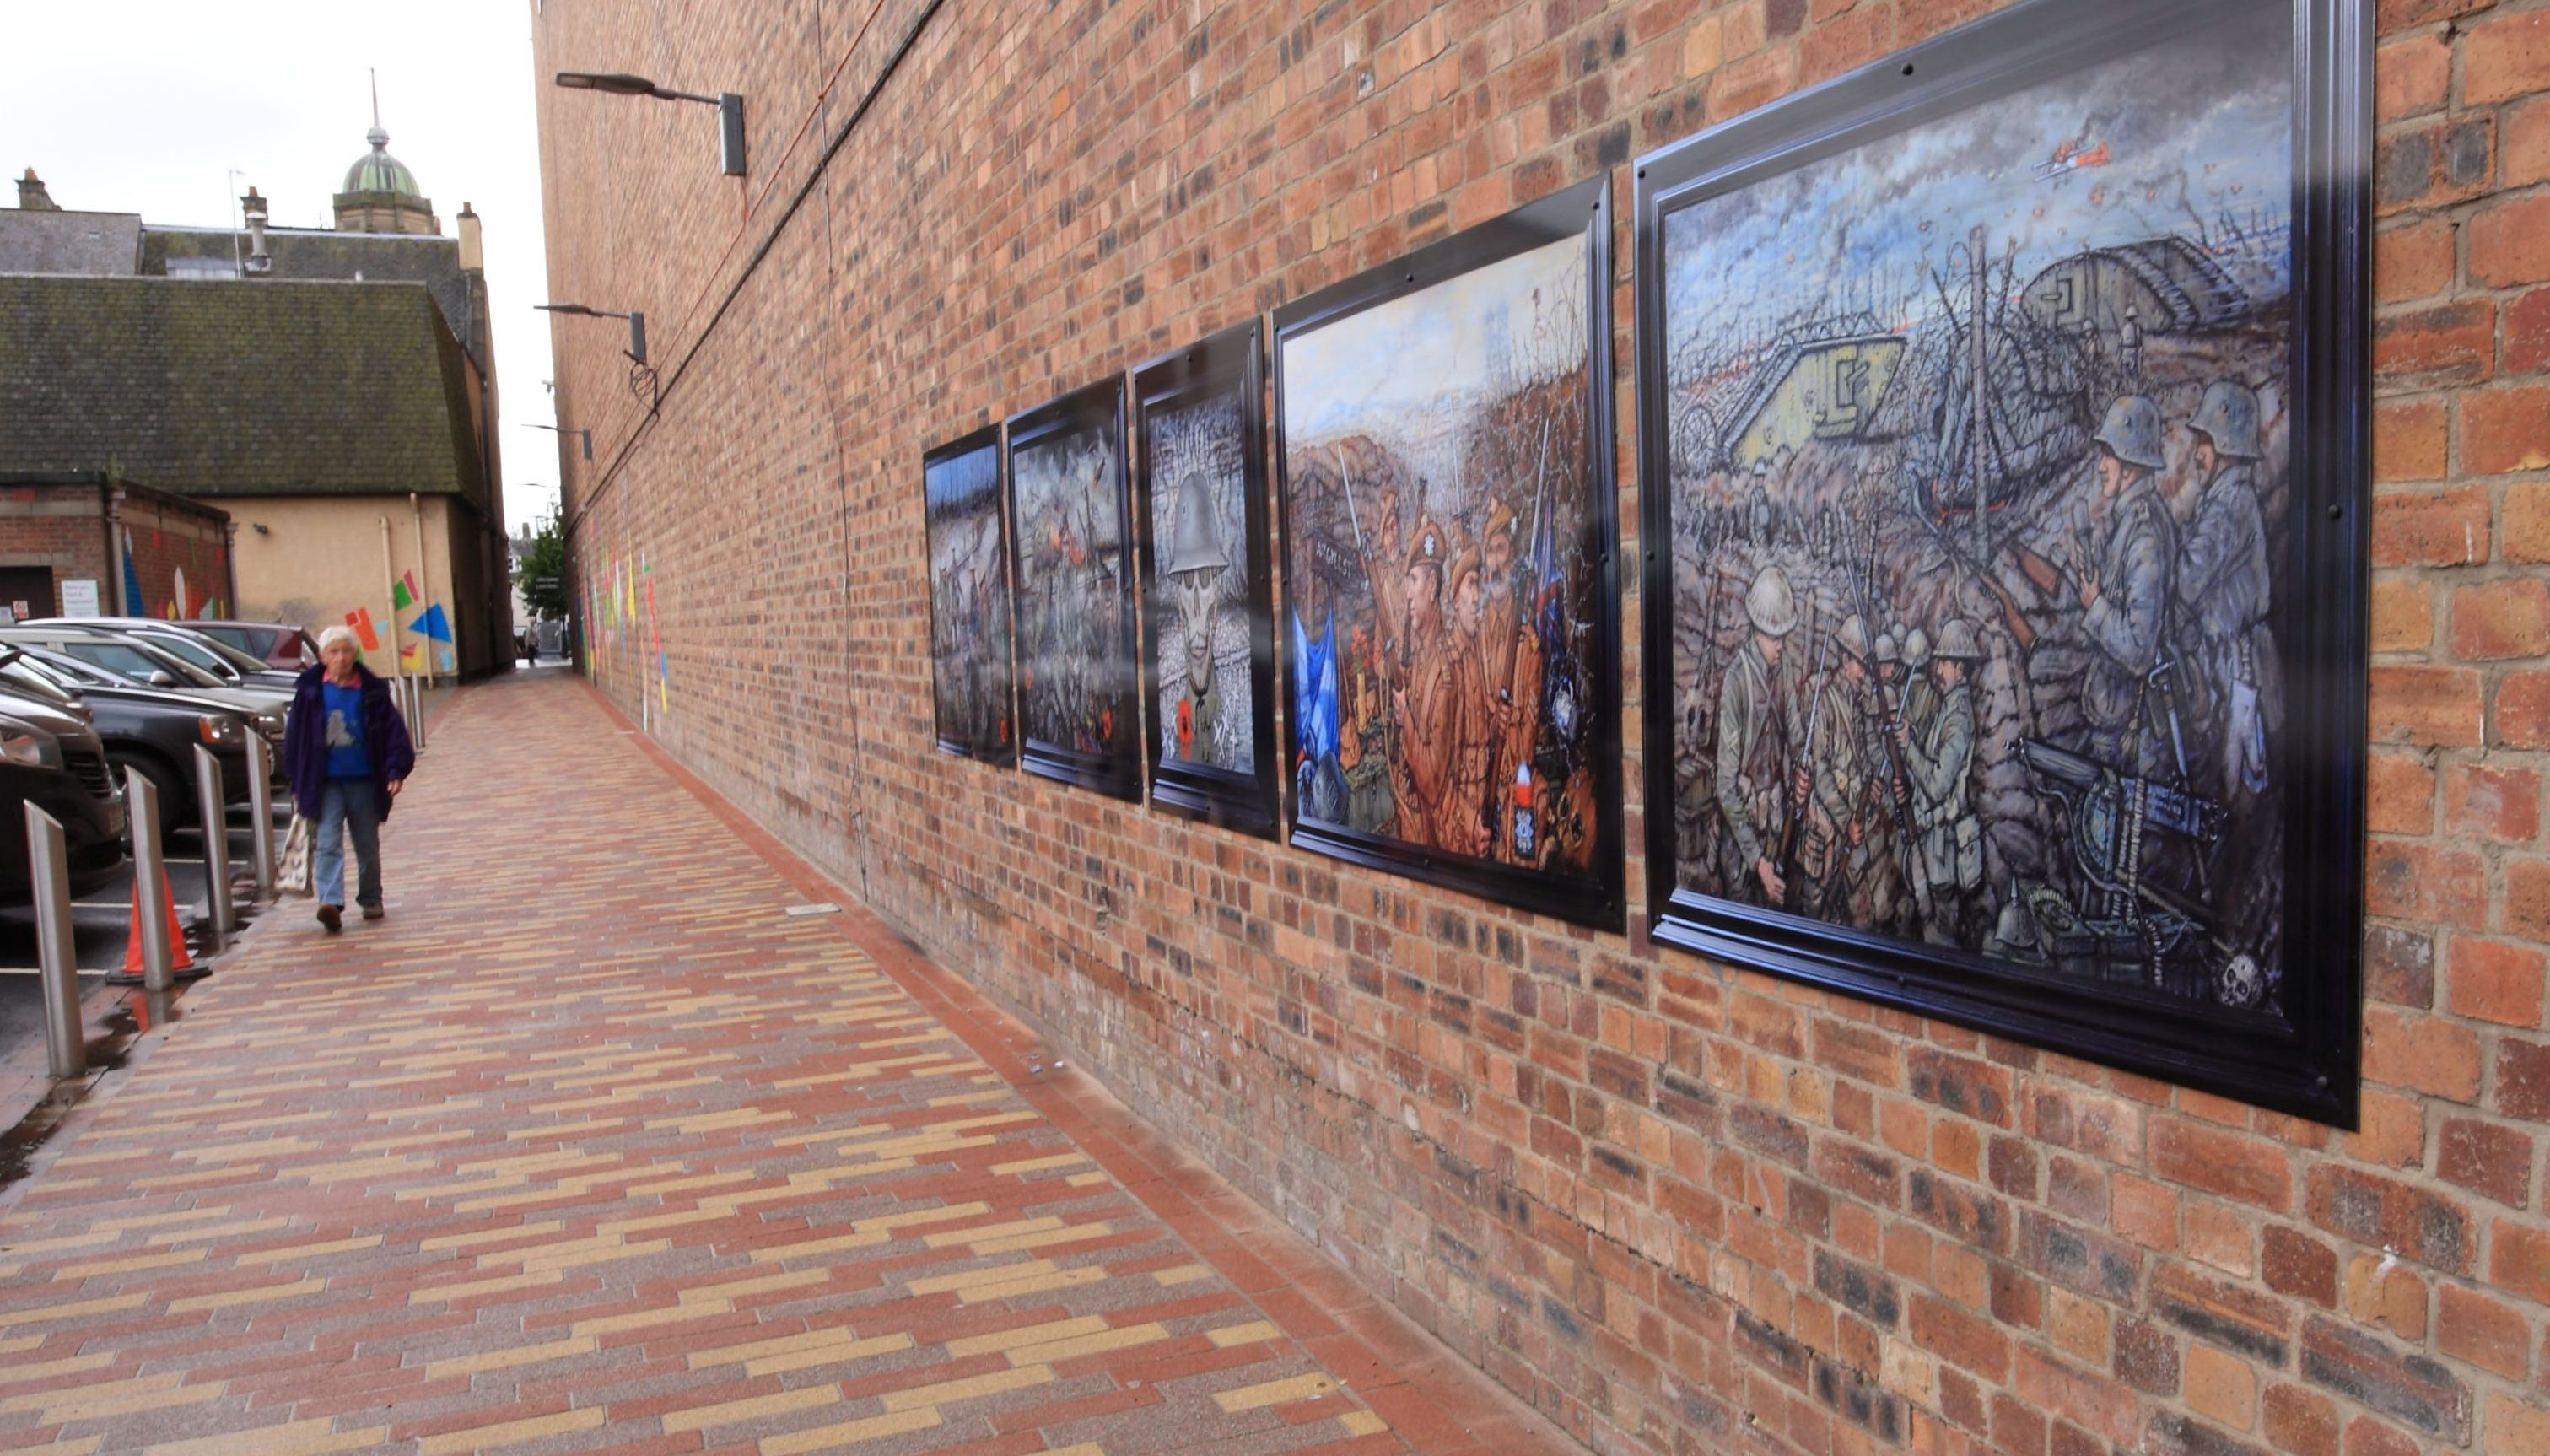 The First World War murals in Perth.